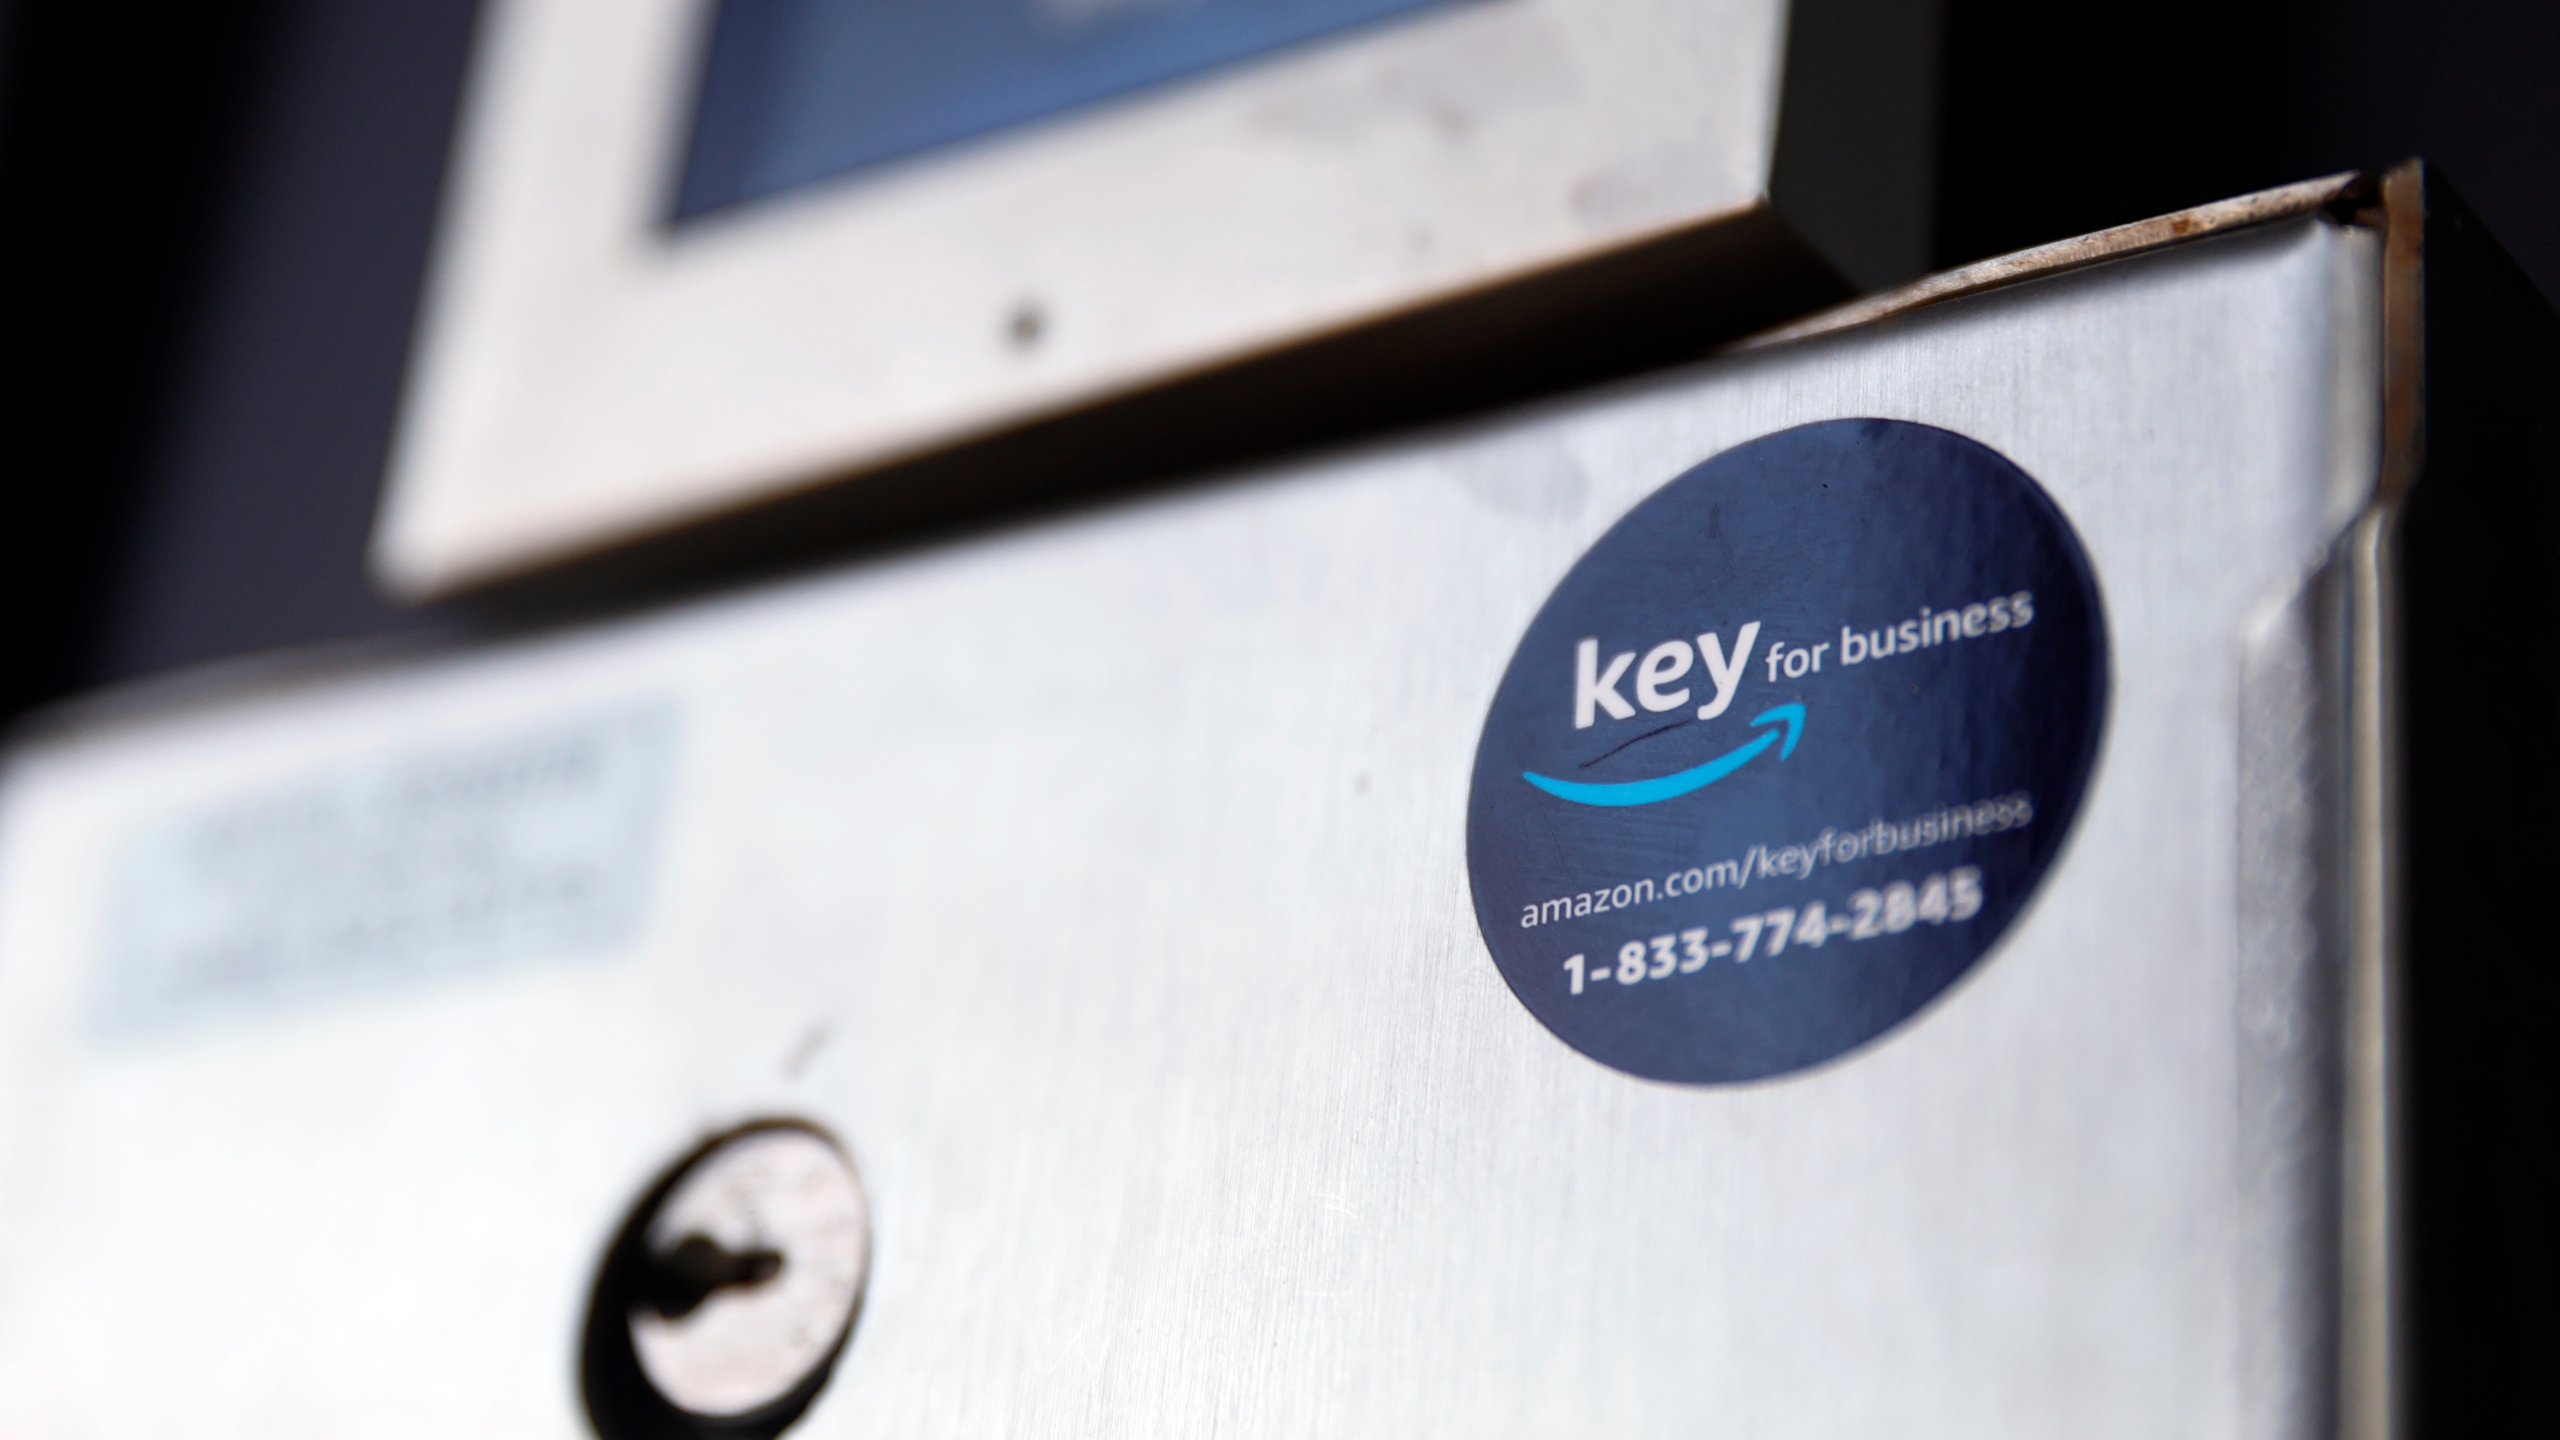 A blue sticker with the Amazon logo is displayed on a buzzer system in the apartment building of Jason Goldberg, chief commerce strategy officer at marketing company Publicis Communications, Monday, March 29, 2021, in Chicago. (AP Photo/Shafkat Anowar)